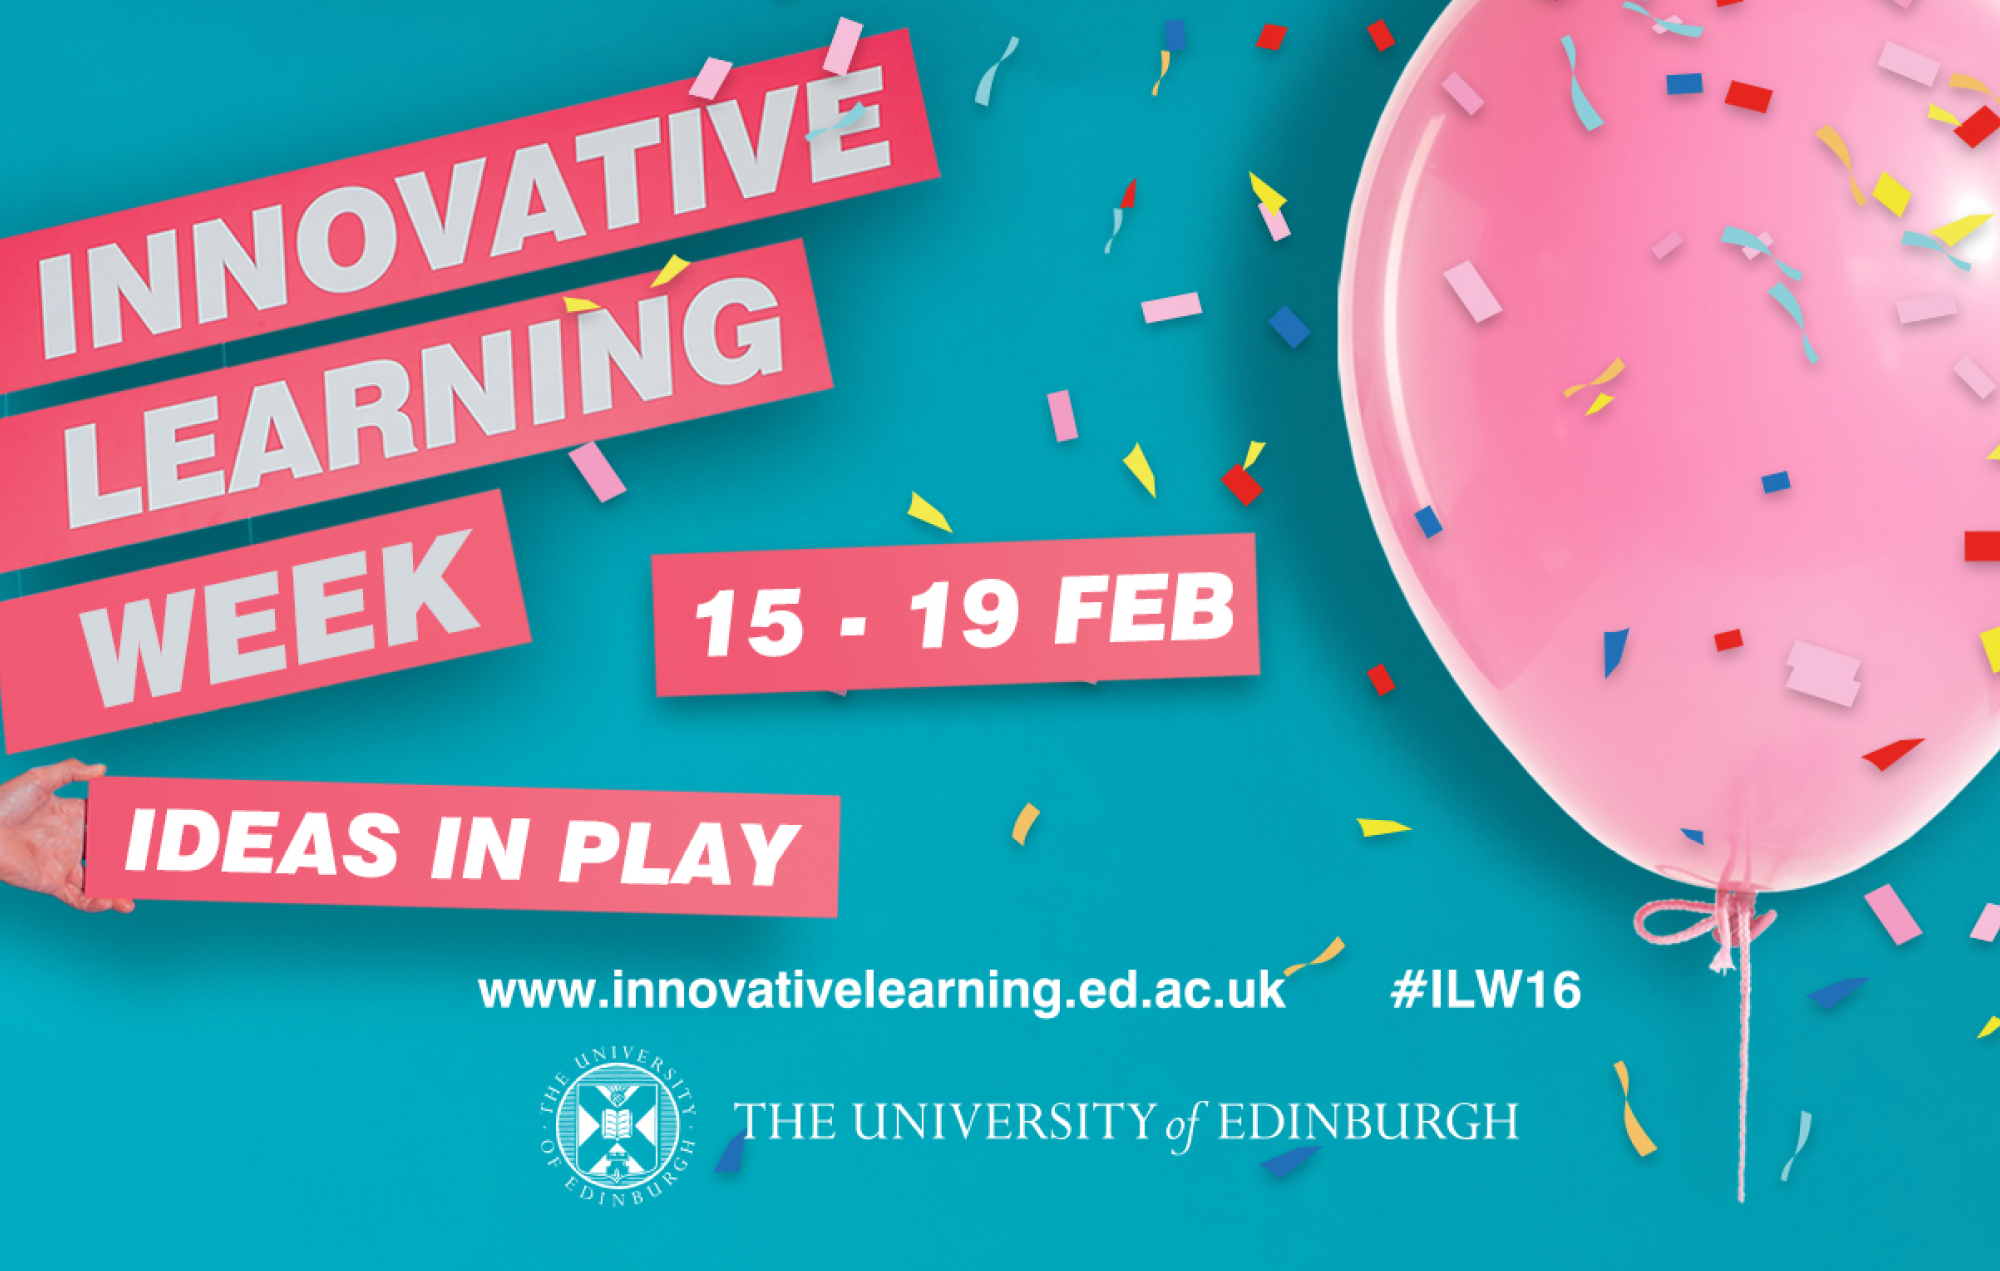 Poster for Innovative Learning Week